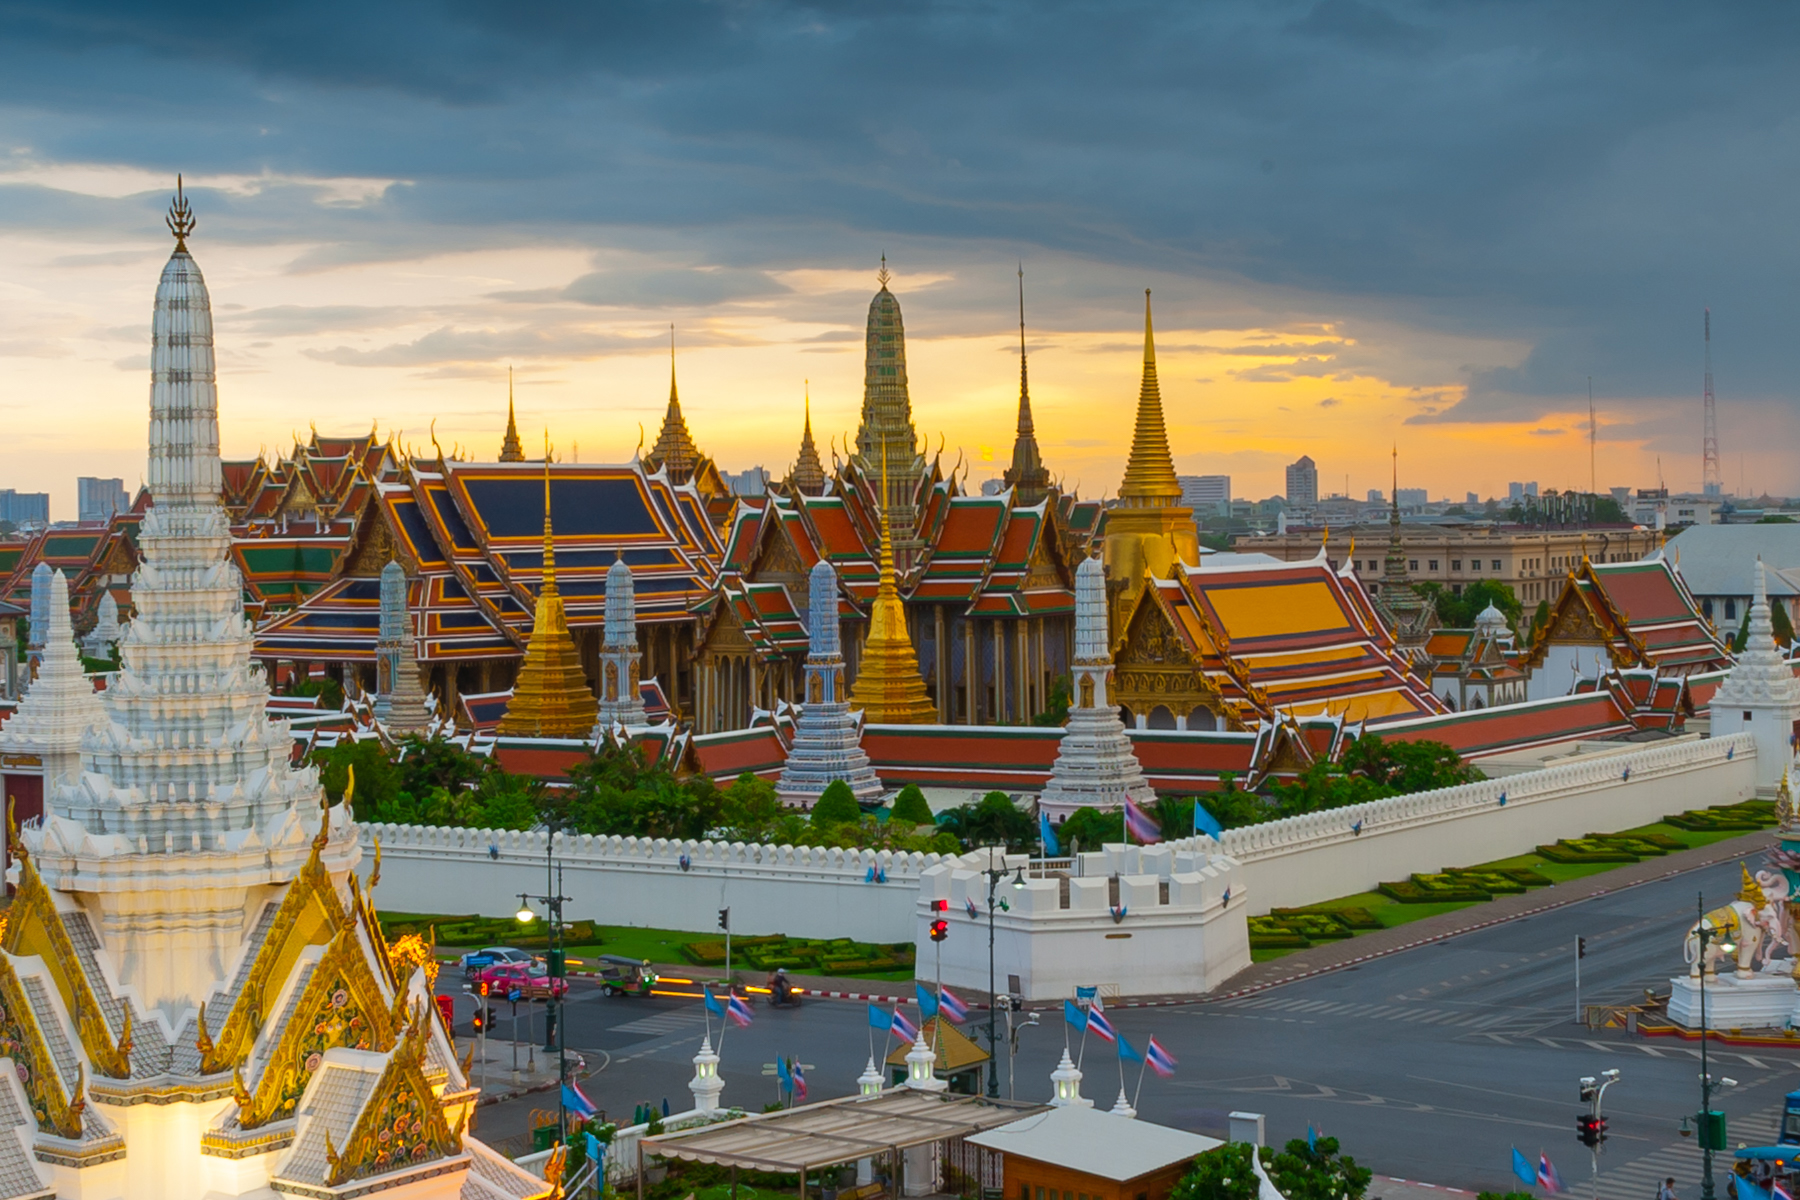 File:Temple of the Emerald of buddha or Wat Phra Kaew (cropped).jpg - Wikimedia Commons